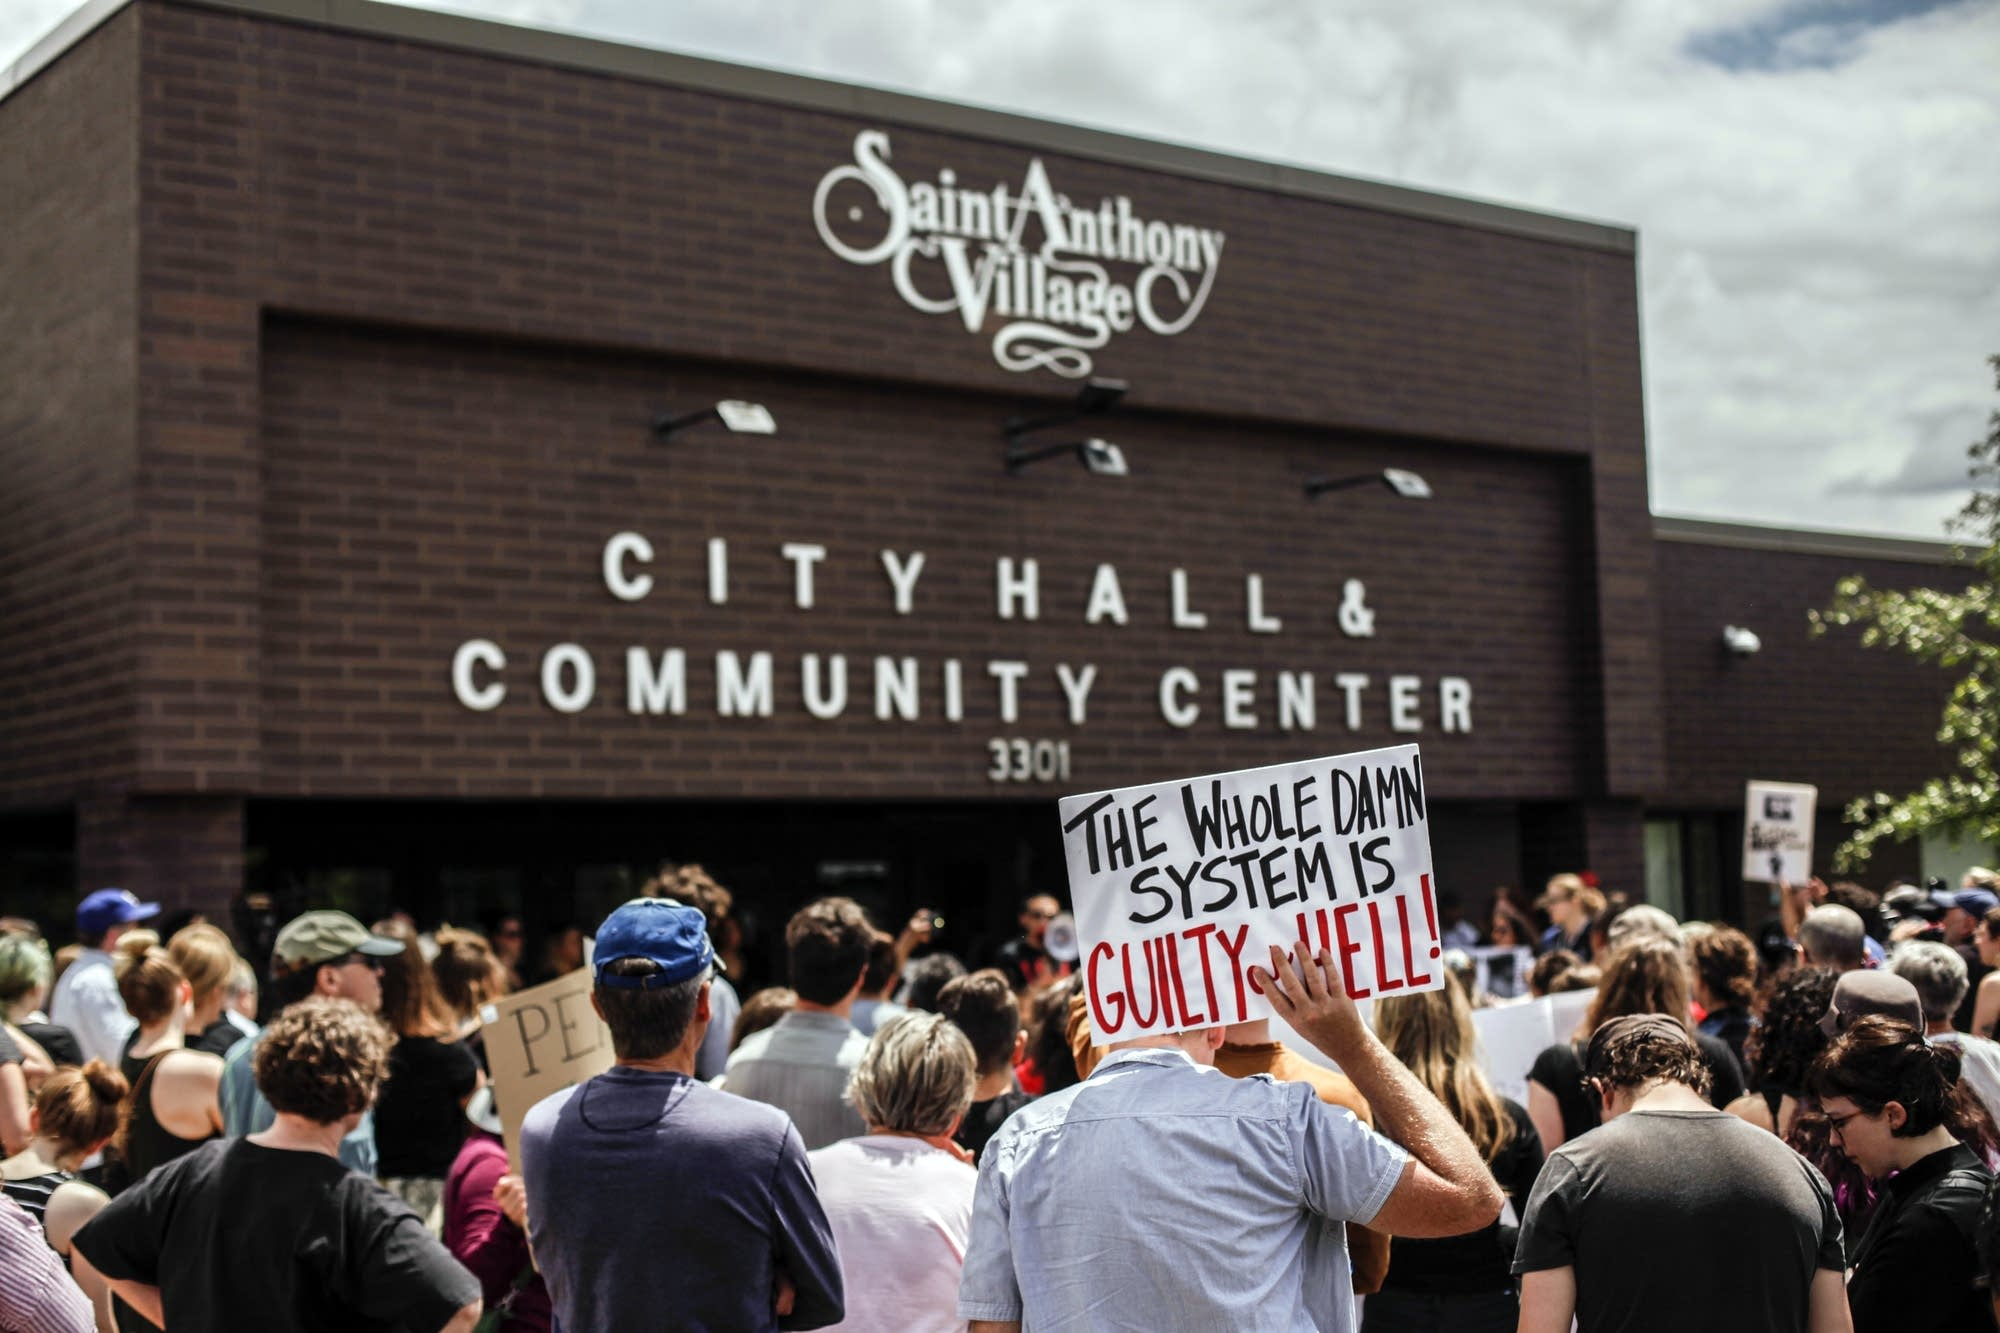 About 250 people gathered outside St. Anthony City Hall to protest Sunday.